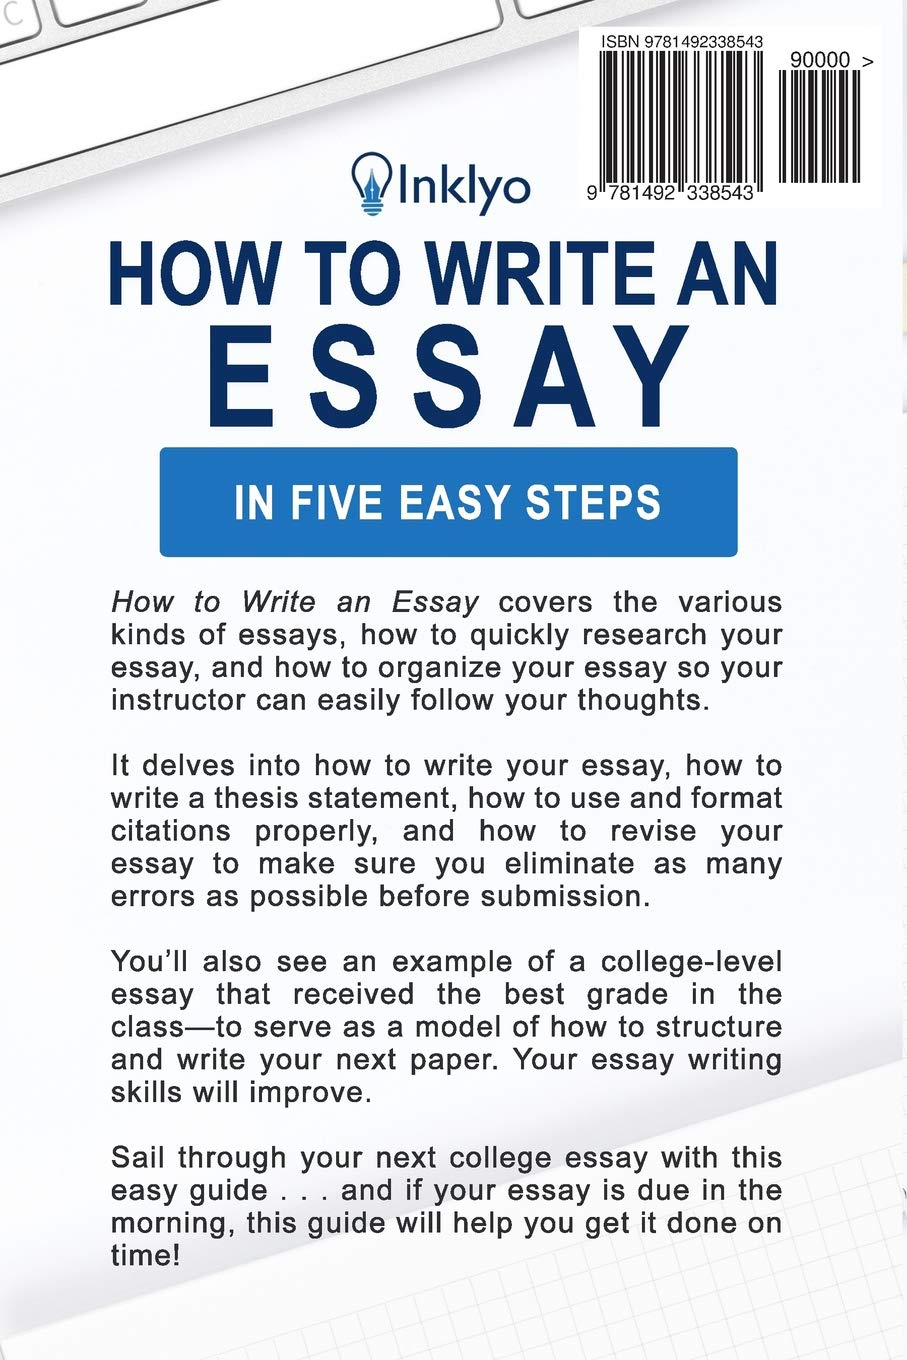 006 71v7ckw5pll How To Write An Essay Quickly Unbelievable English Very Full